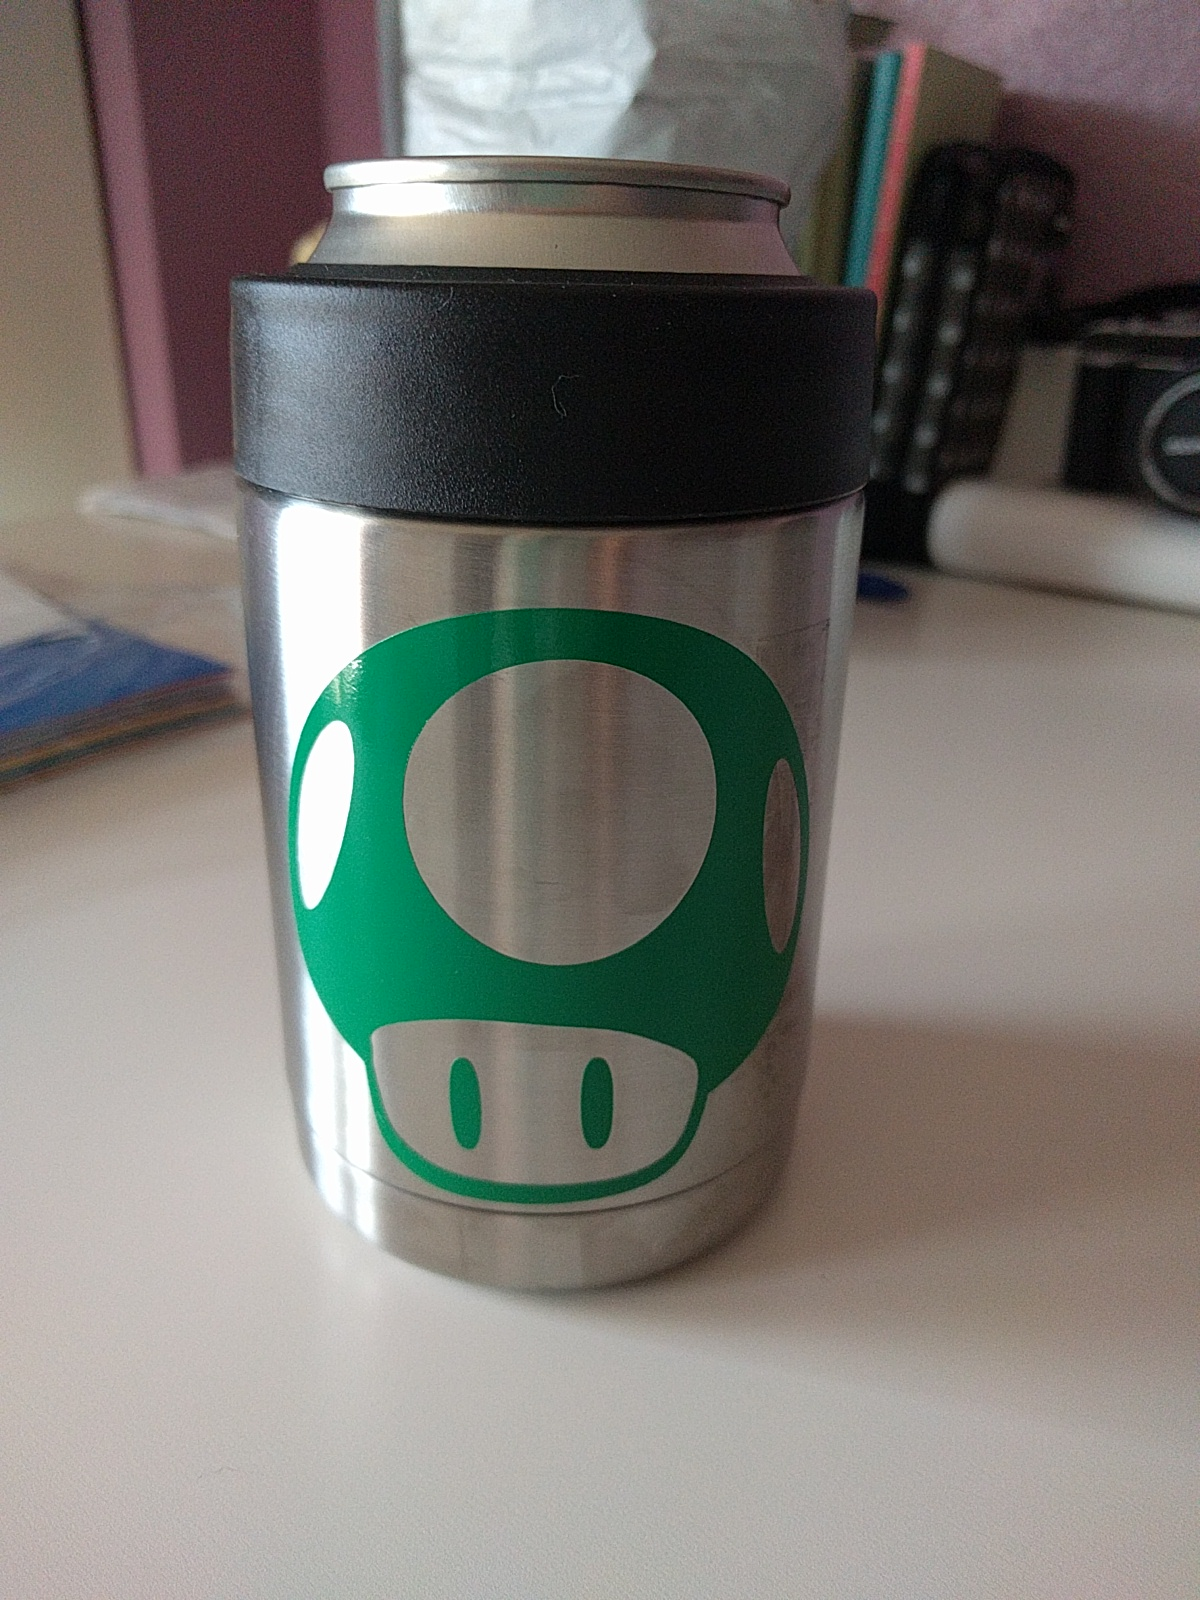 """Notes:  - I cleaned the surface with alcohol  - I used scotch tape for moving the design from the matt/backing to the surface. Perfect amount of stickiness  - etsy file -> https://www.etsy.com/listing/525736348/super-mario-dxf-super-mario-eps-mario-1?ga_search_query=mushroom&ref=shop_items_search_ 1     Materials I used:   - Official Yeti Koozie thing (the best)! YETI Rambler Vacuum Insulated Stainless Steel Colster   - This is the first time I've used this brand of vinyl (it is more permanent than crictu brand) and it was great! Ultimate Oracal 651 Starter Pack 63 Glossy Self Adhesive Vinyl Sheets (12"""" x 12"""", 63 Assortment)     Links:  - I used this tutorial as a starting point: http://www.leapoffaithcrafting.com/applying-vinyl-to-a-tumbler/"""